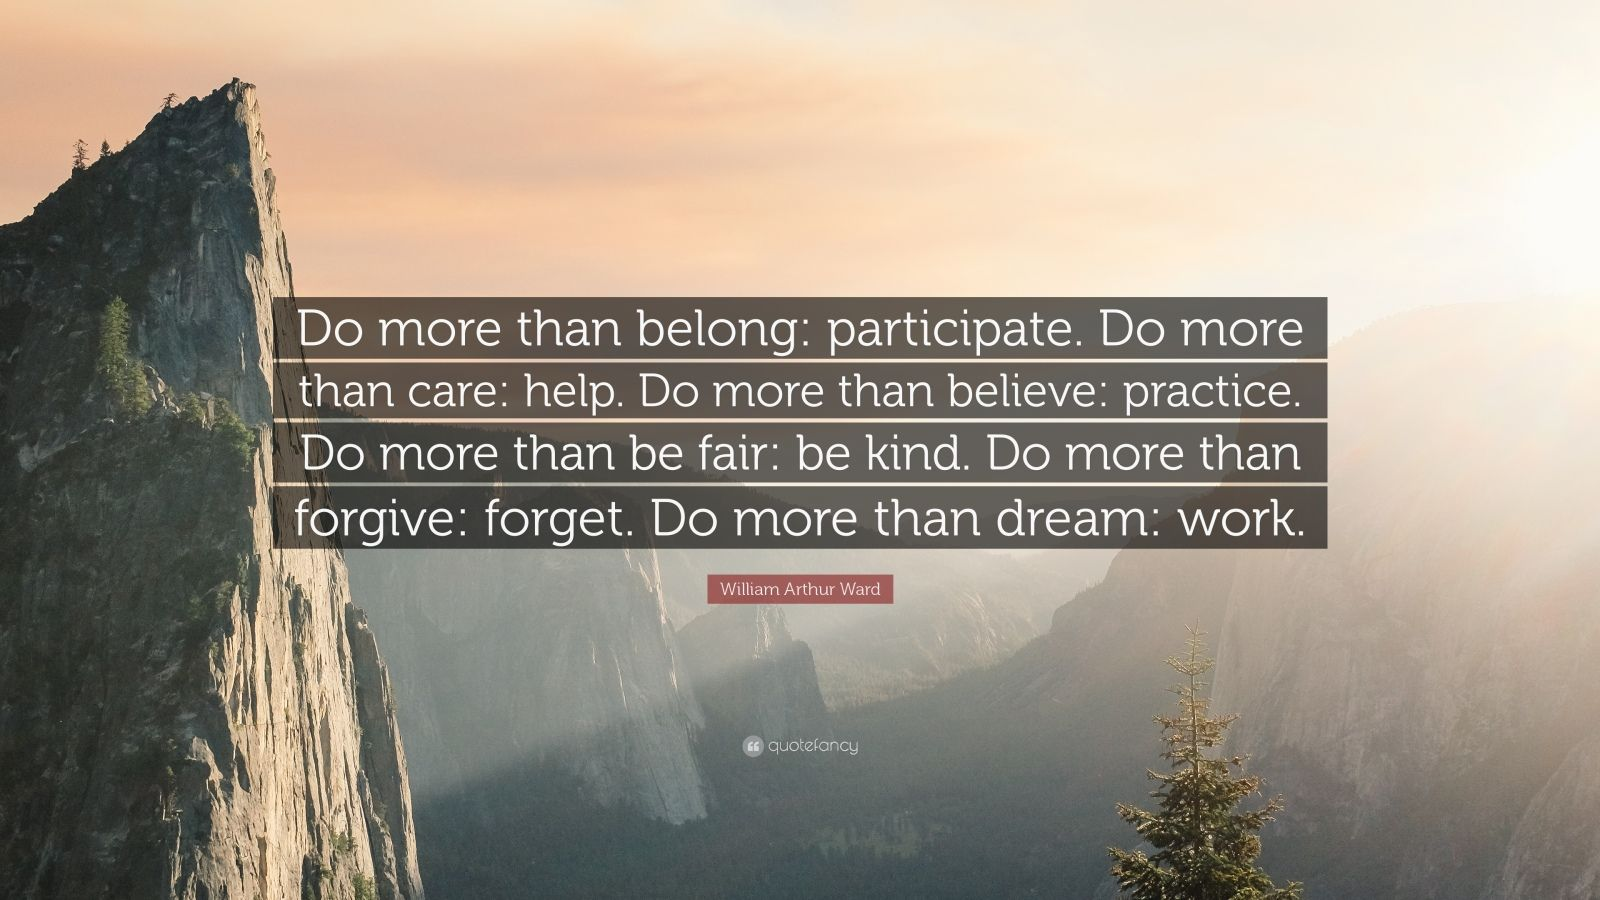 "William Arthur Ward Quote: ""Do more than belong: participate. Do more than care: help. Do more than believe: practice. Do more than be fair: be kind. Do more than forgive: forget. Do more than dream: work."""